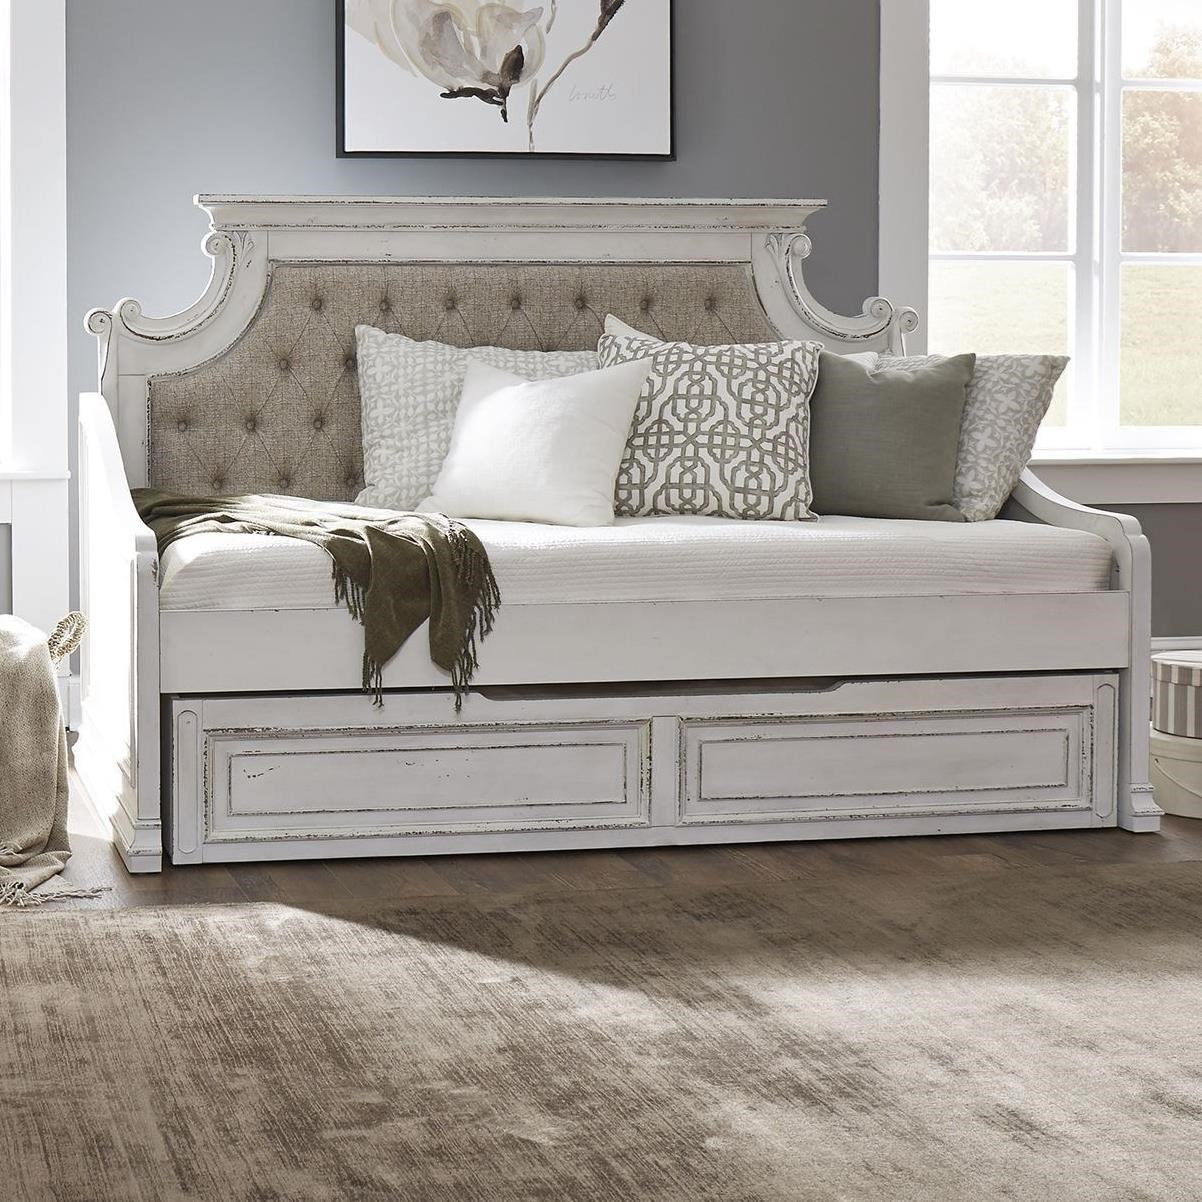 Twin Trundle Daybed with Tufted Upholstered Back